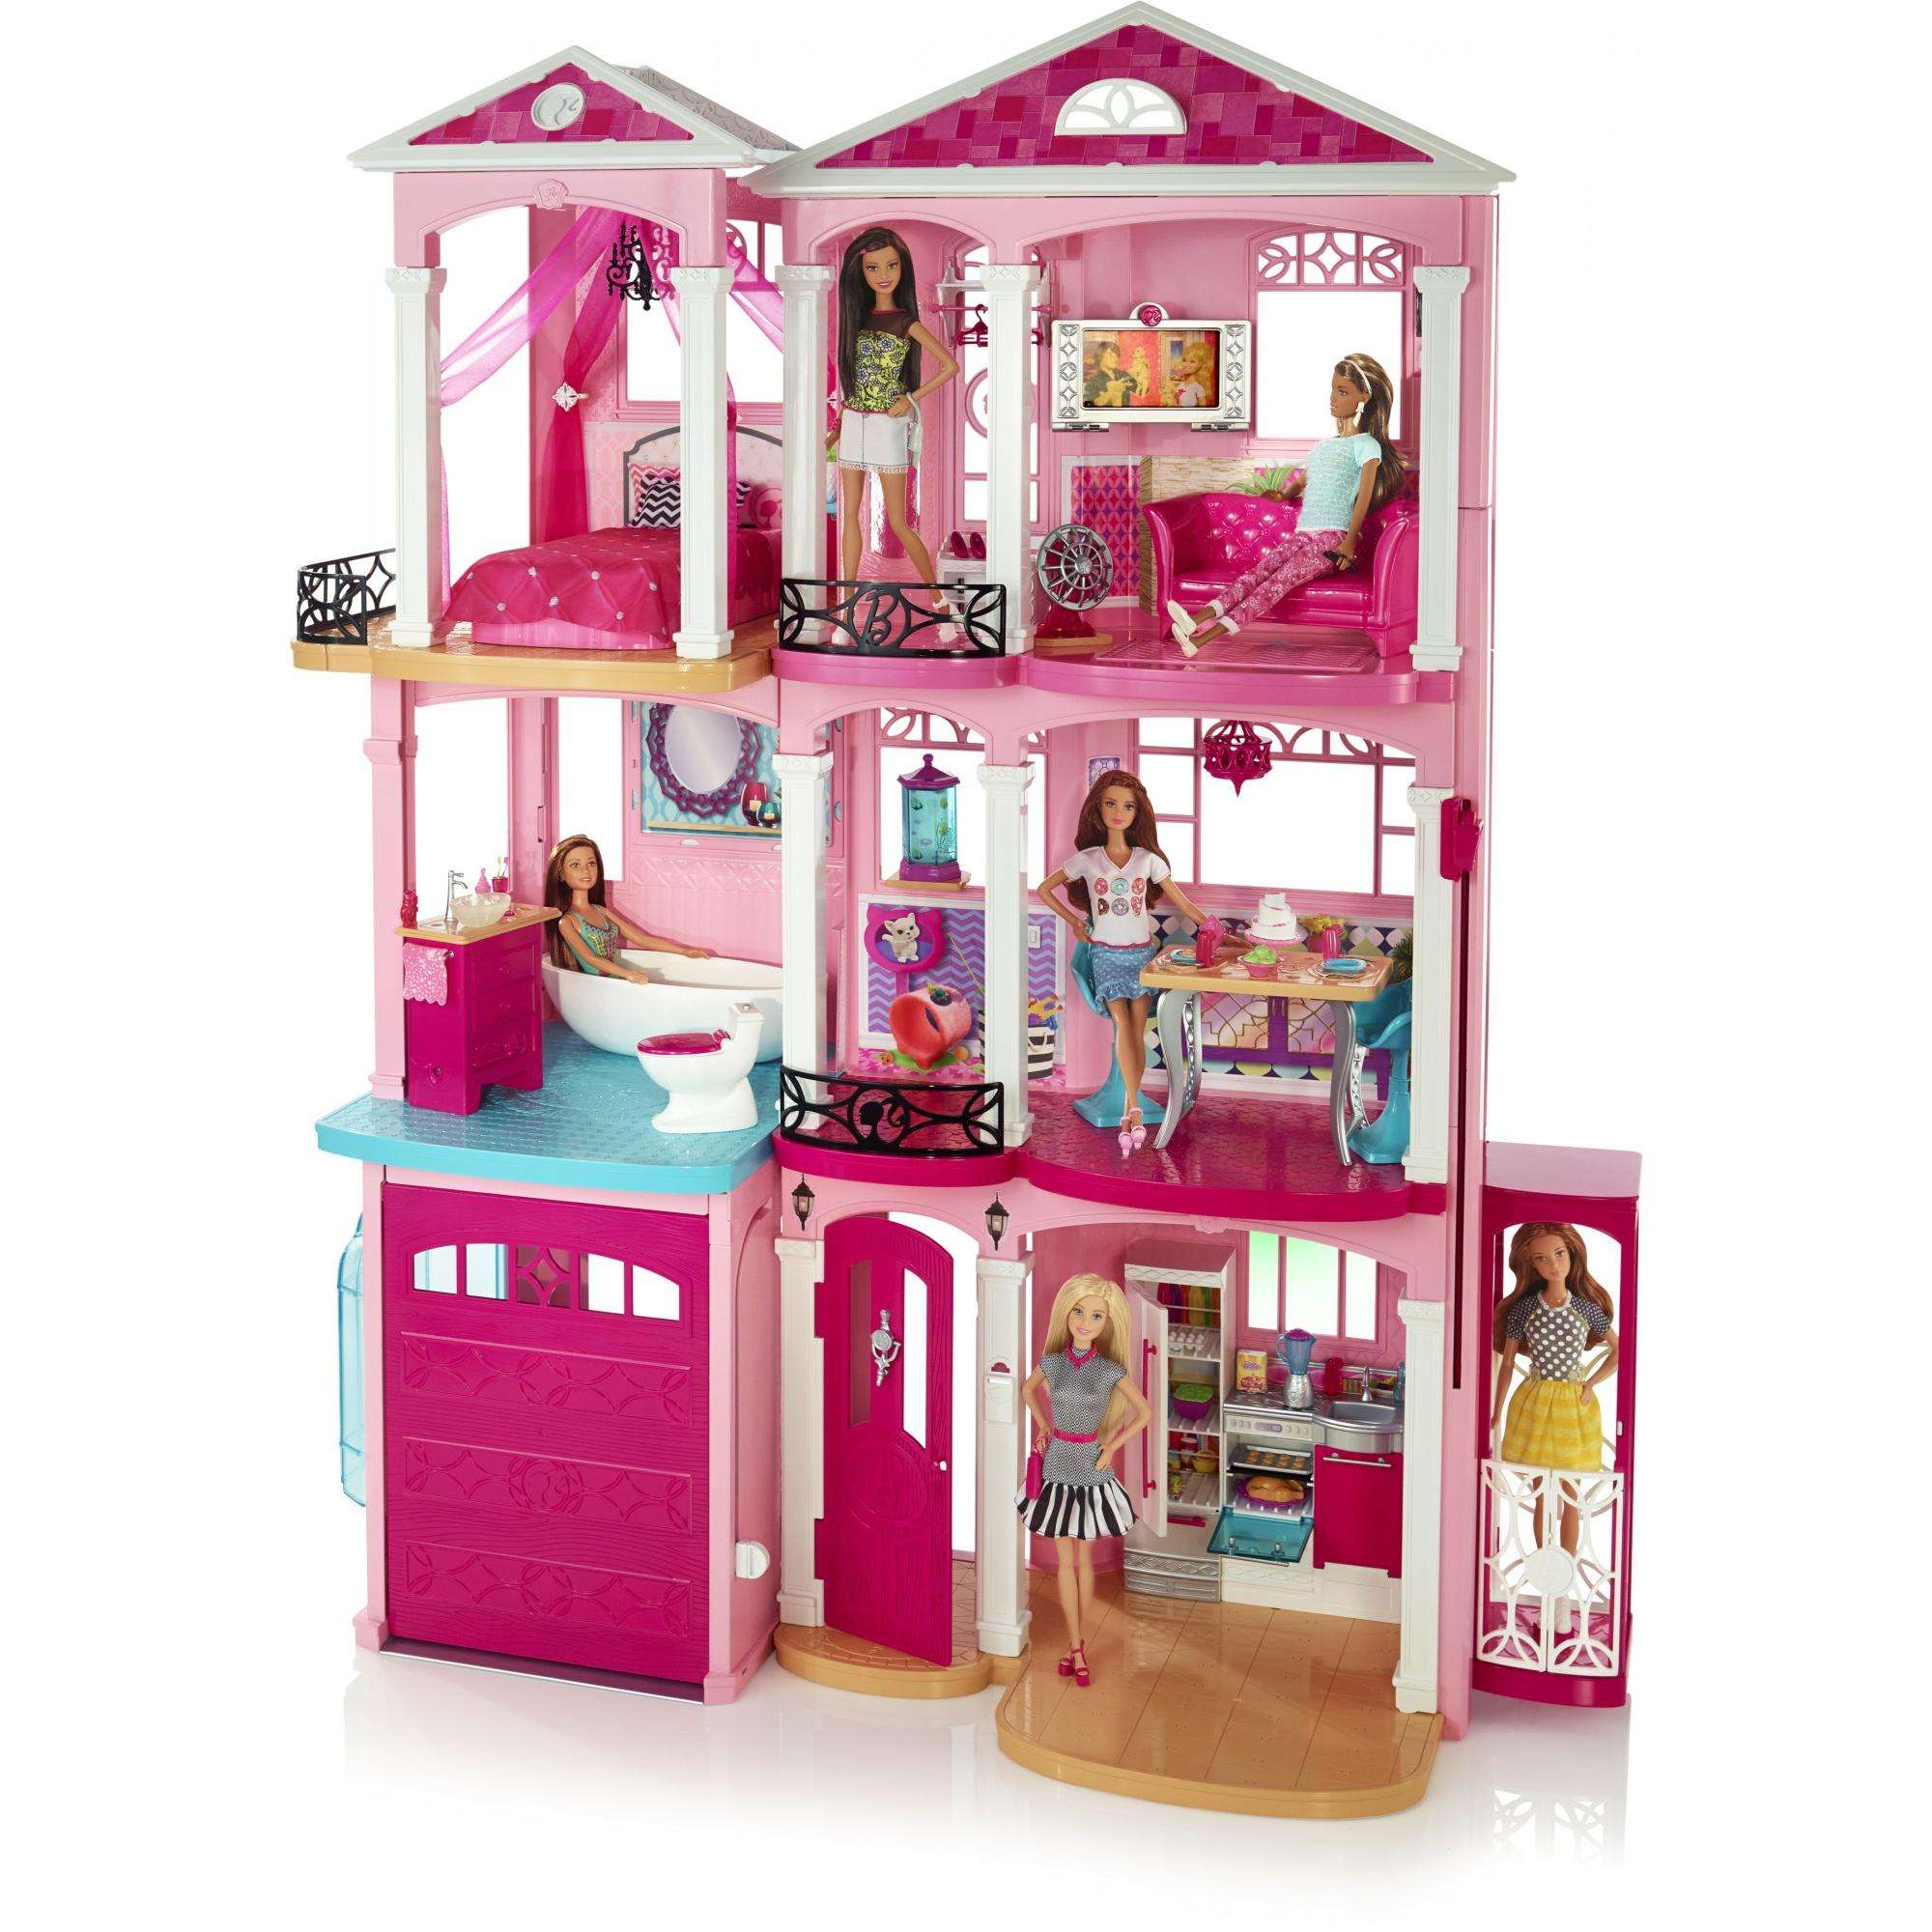 BarbieR DreamHouseR Playset With 70 Accessory Pieces